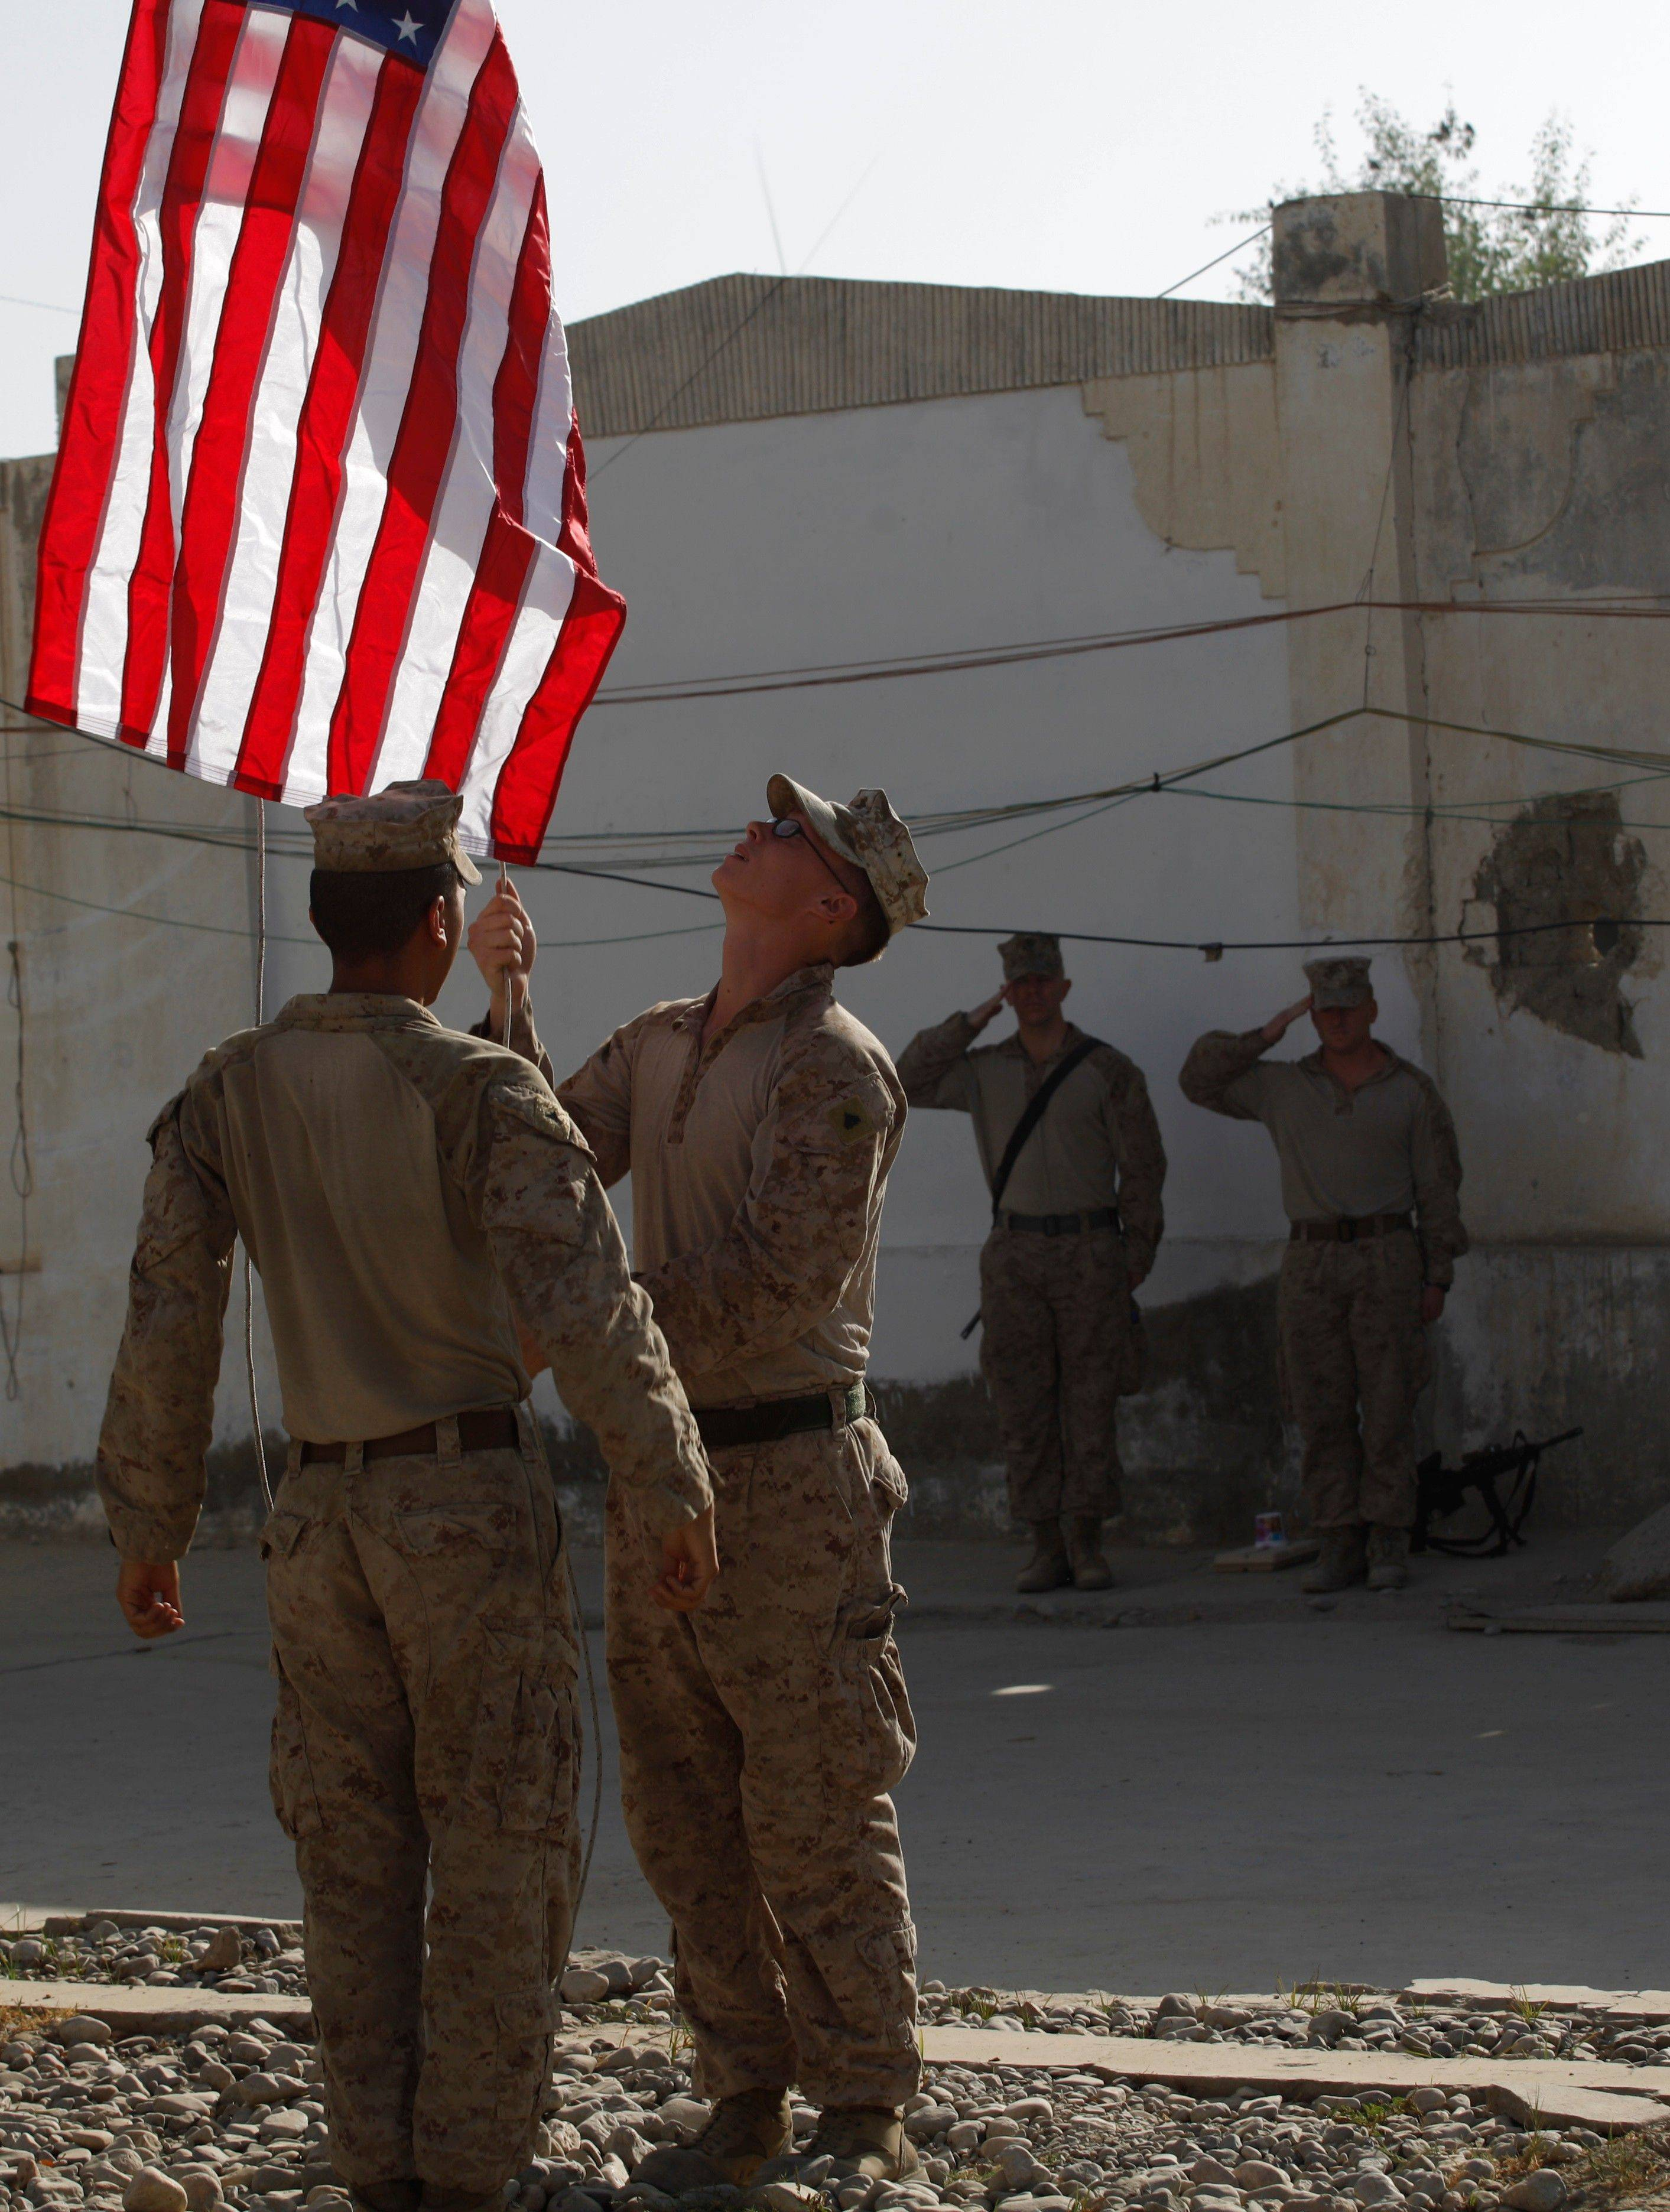 U.S. Marines raise the American flag in the morning at Forward Operating Base Jackson, in Sangin, Helmand province, Sunday Sept. 11, 2011. Ten years have passed since the deadly suicide attacks of Sept. 11, 2001 led the United States to wage war in Afghanistan.